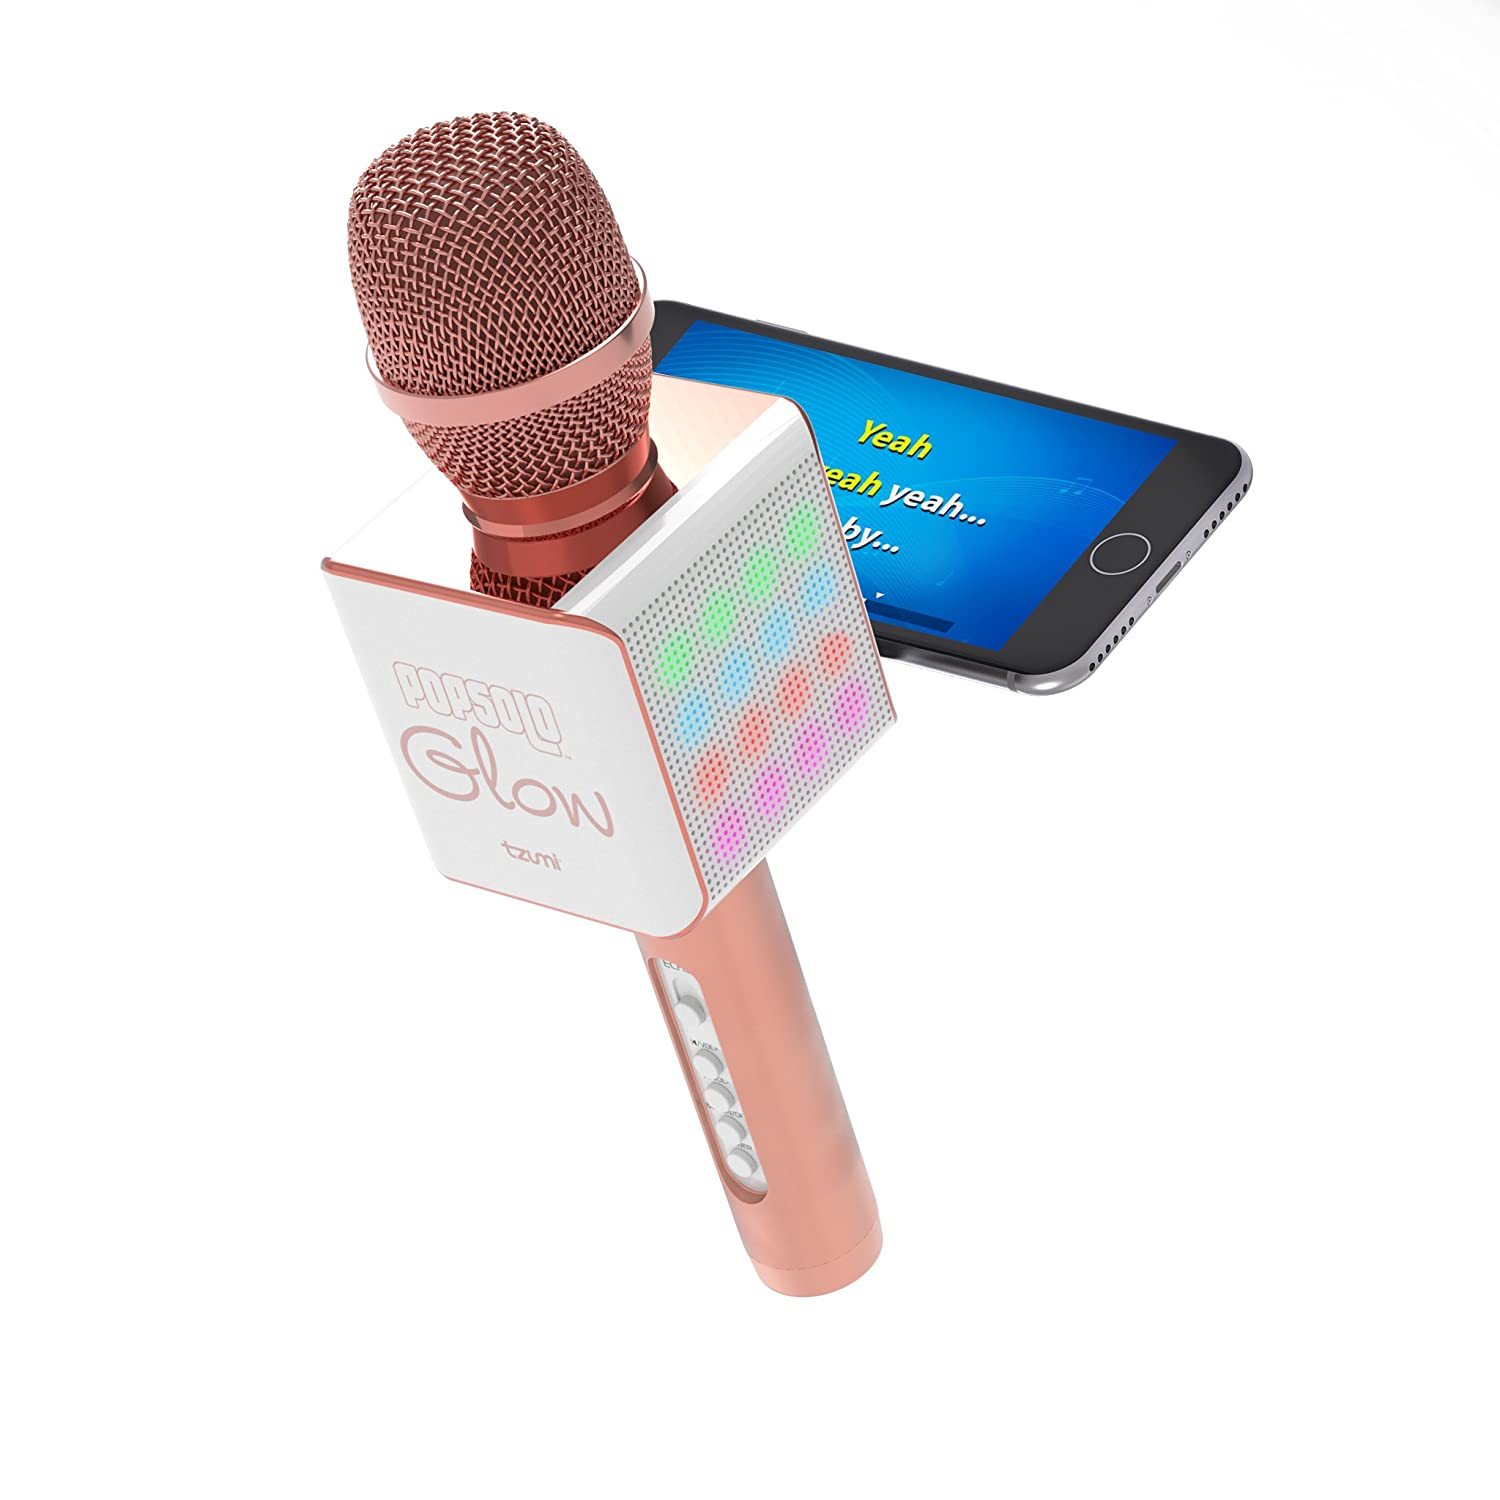 Tzumi PopSolo Glow– Rechargeable Bluetooth Karaoke Microphone and Voice Mixer with Smartphone Holder and Dancing LED Effects – Great for All Ages (Rose gold Glow) 5043AMZ